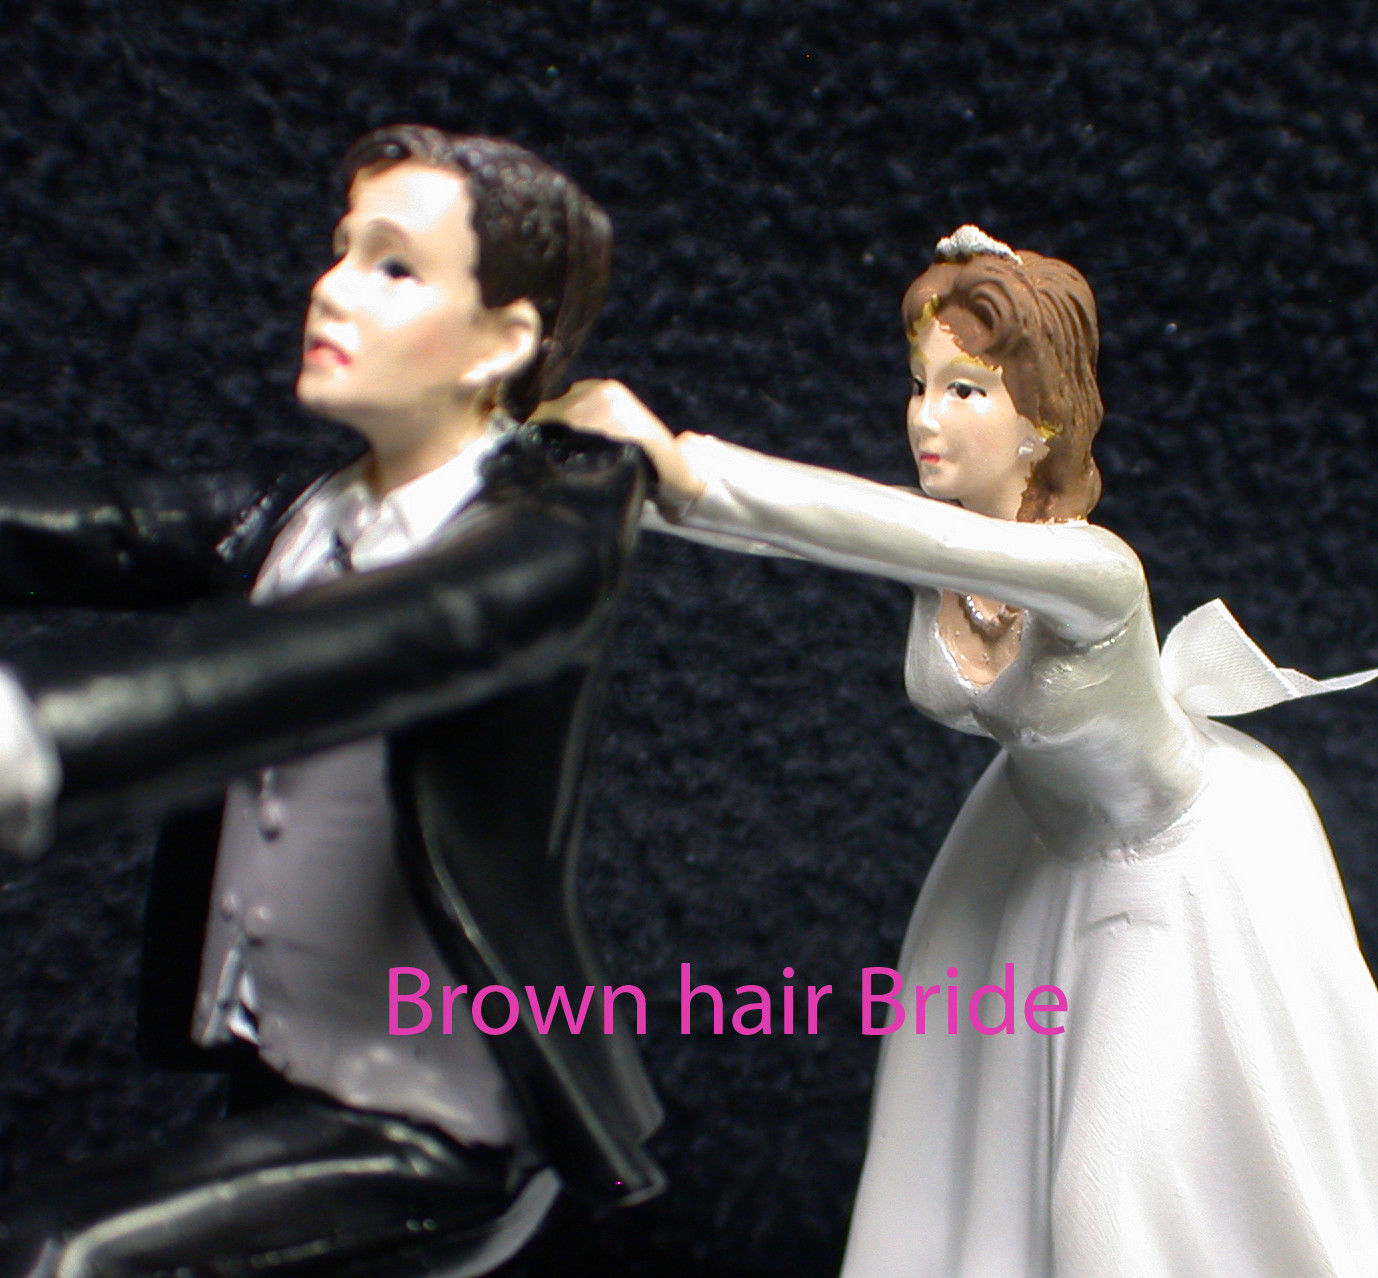 Wedding Cake Topper W/ RED Honda Motorcycle White Black Hispanic Groom top NEW